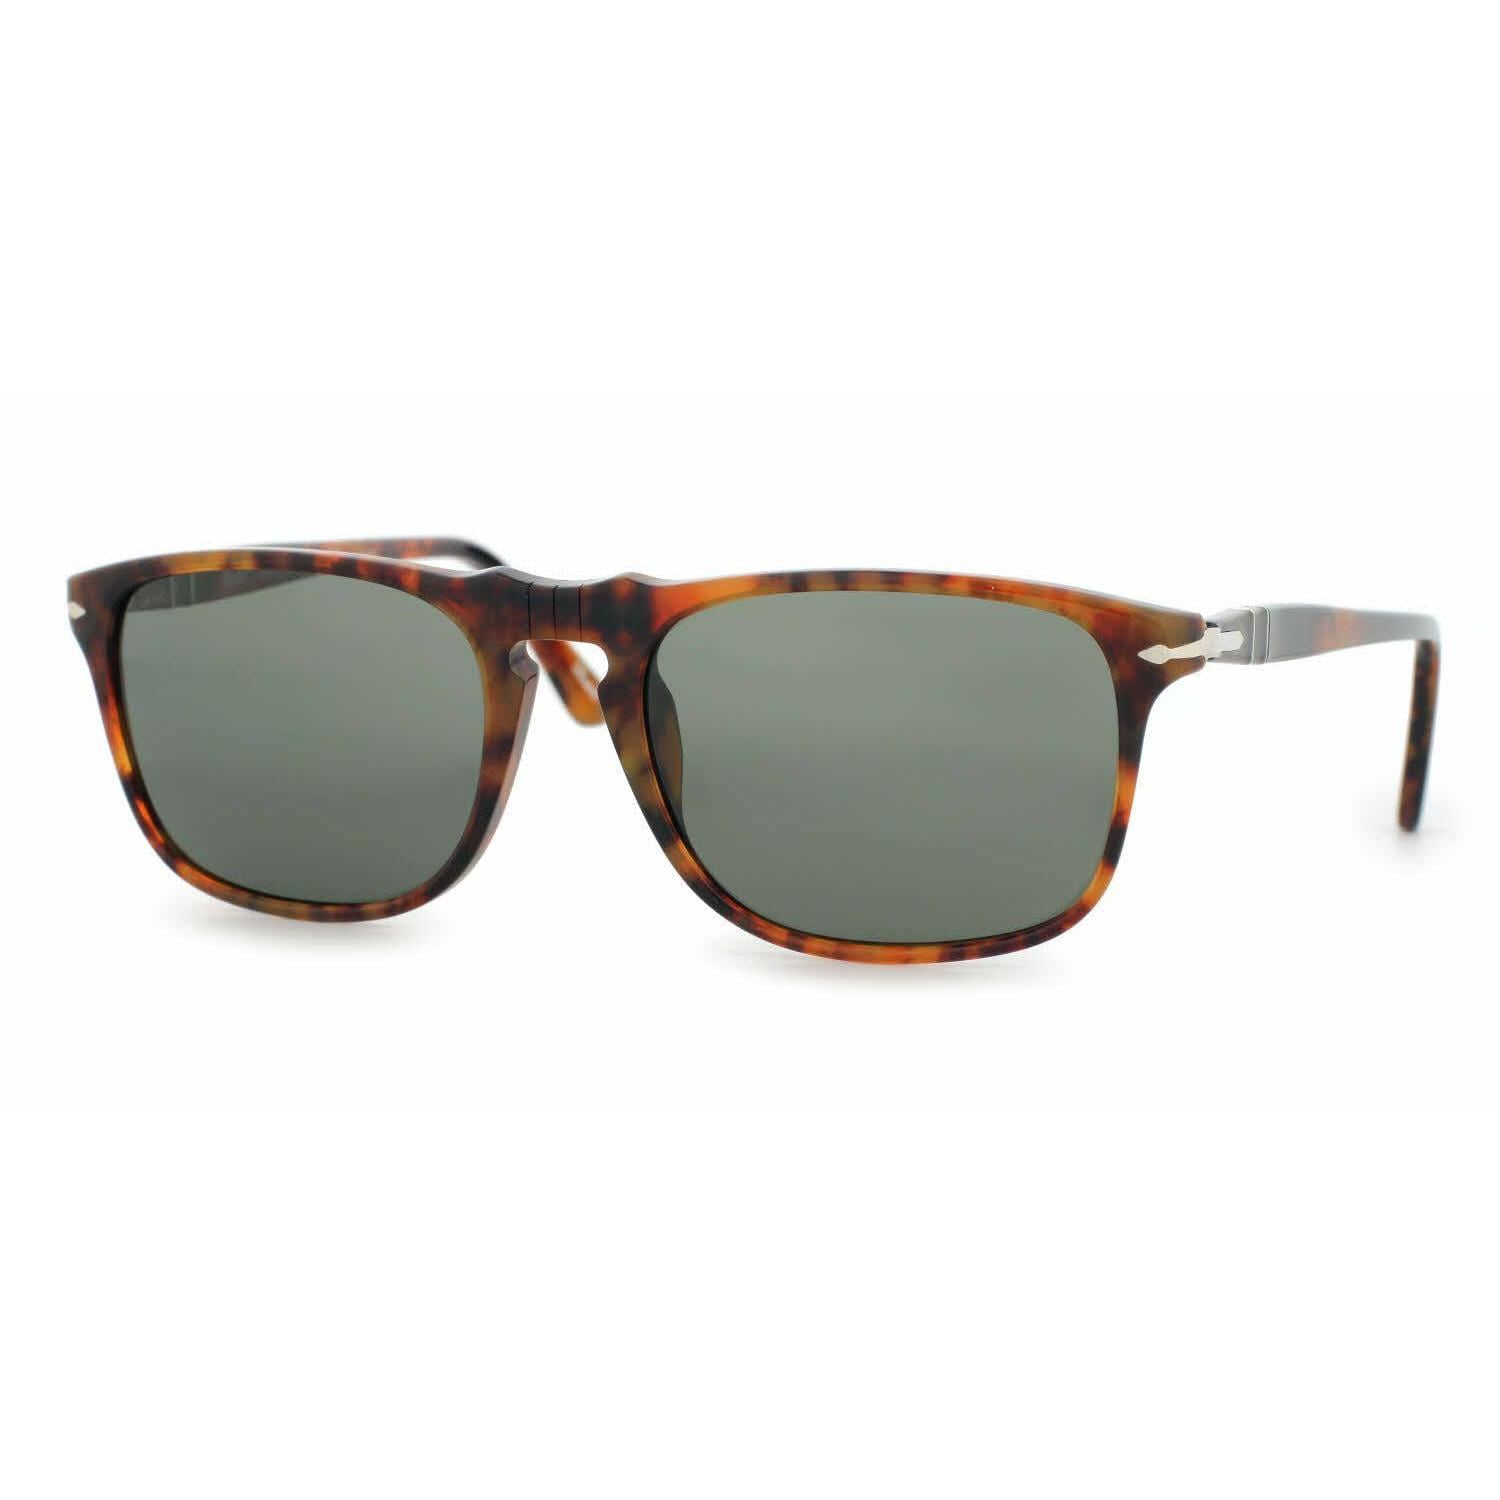 cbad28ca8f Shop Persol Mens PO3059S 108 58 Crystal Plastic Square Sunglasses - Free  Shipping Today - Overstock - 13471311